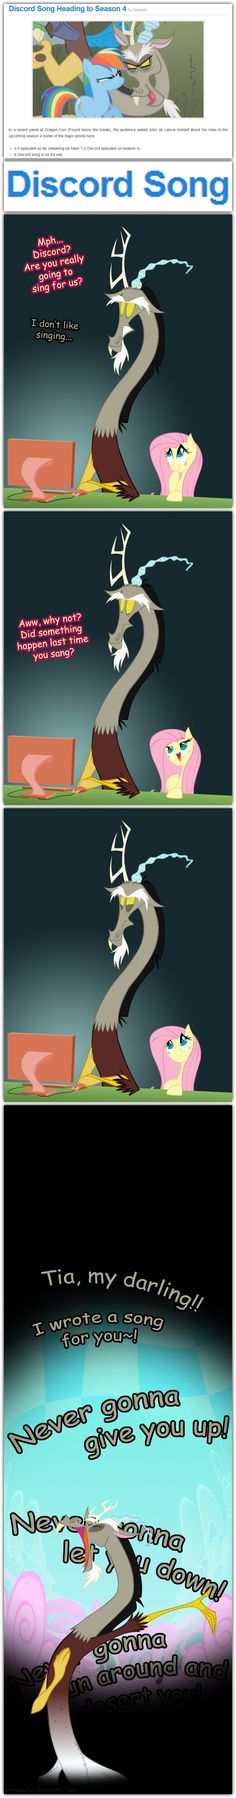 In the middle of my SONG? -season 4 spoilers- by grievousfan.deviantart.com on @deviantART